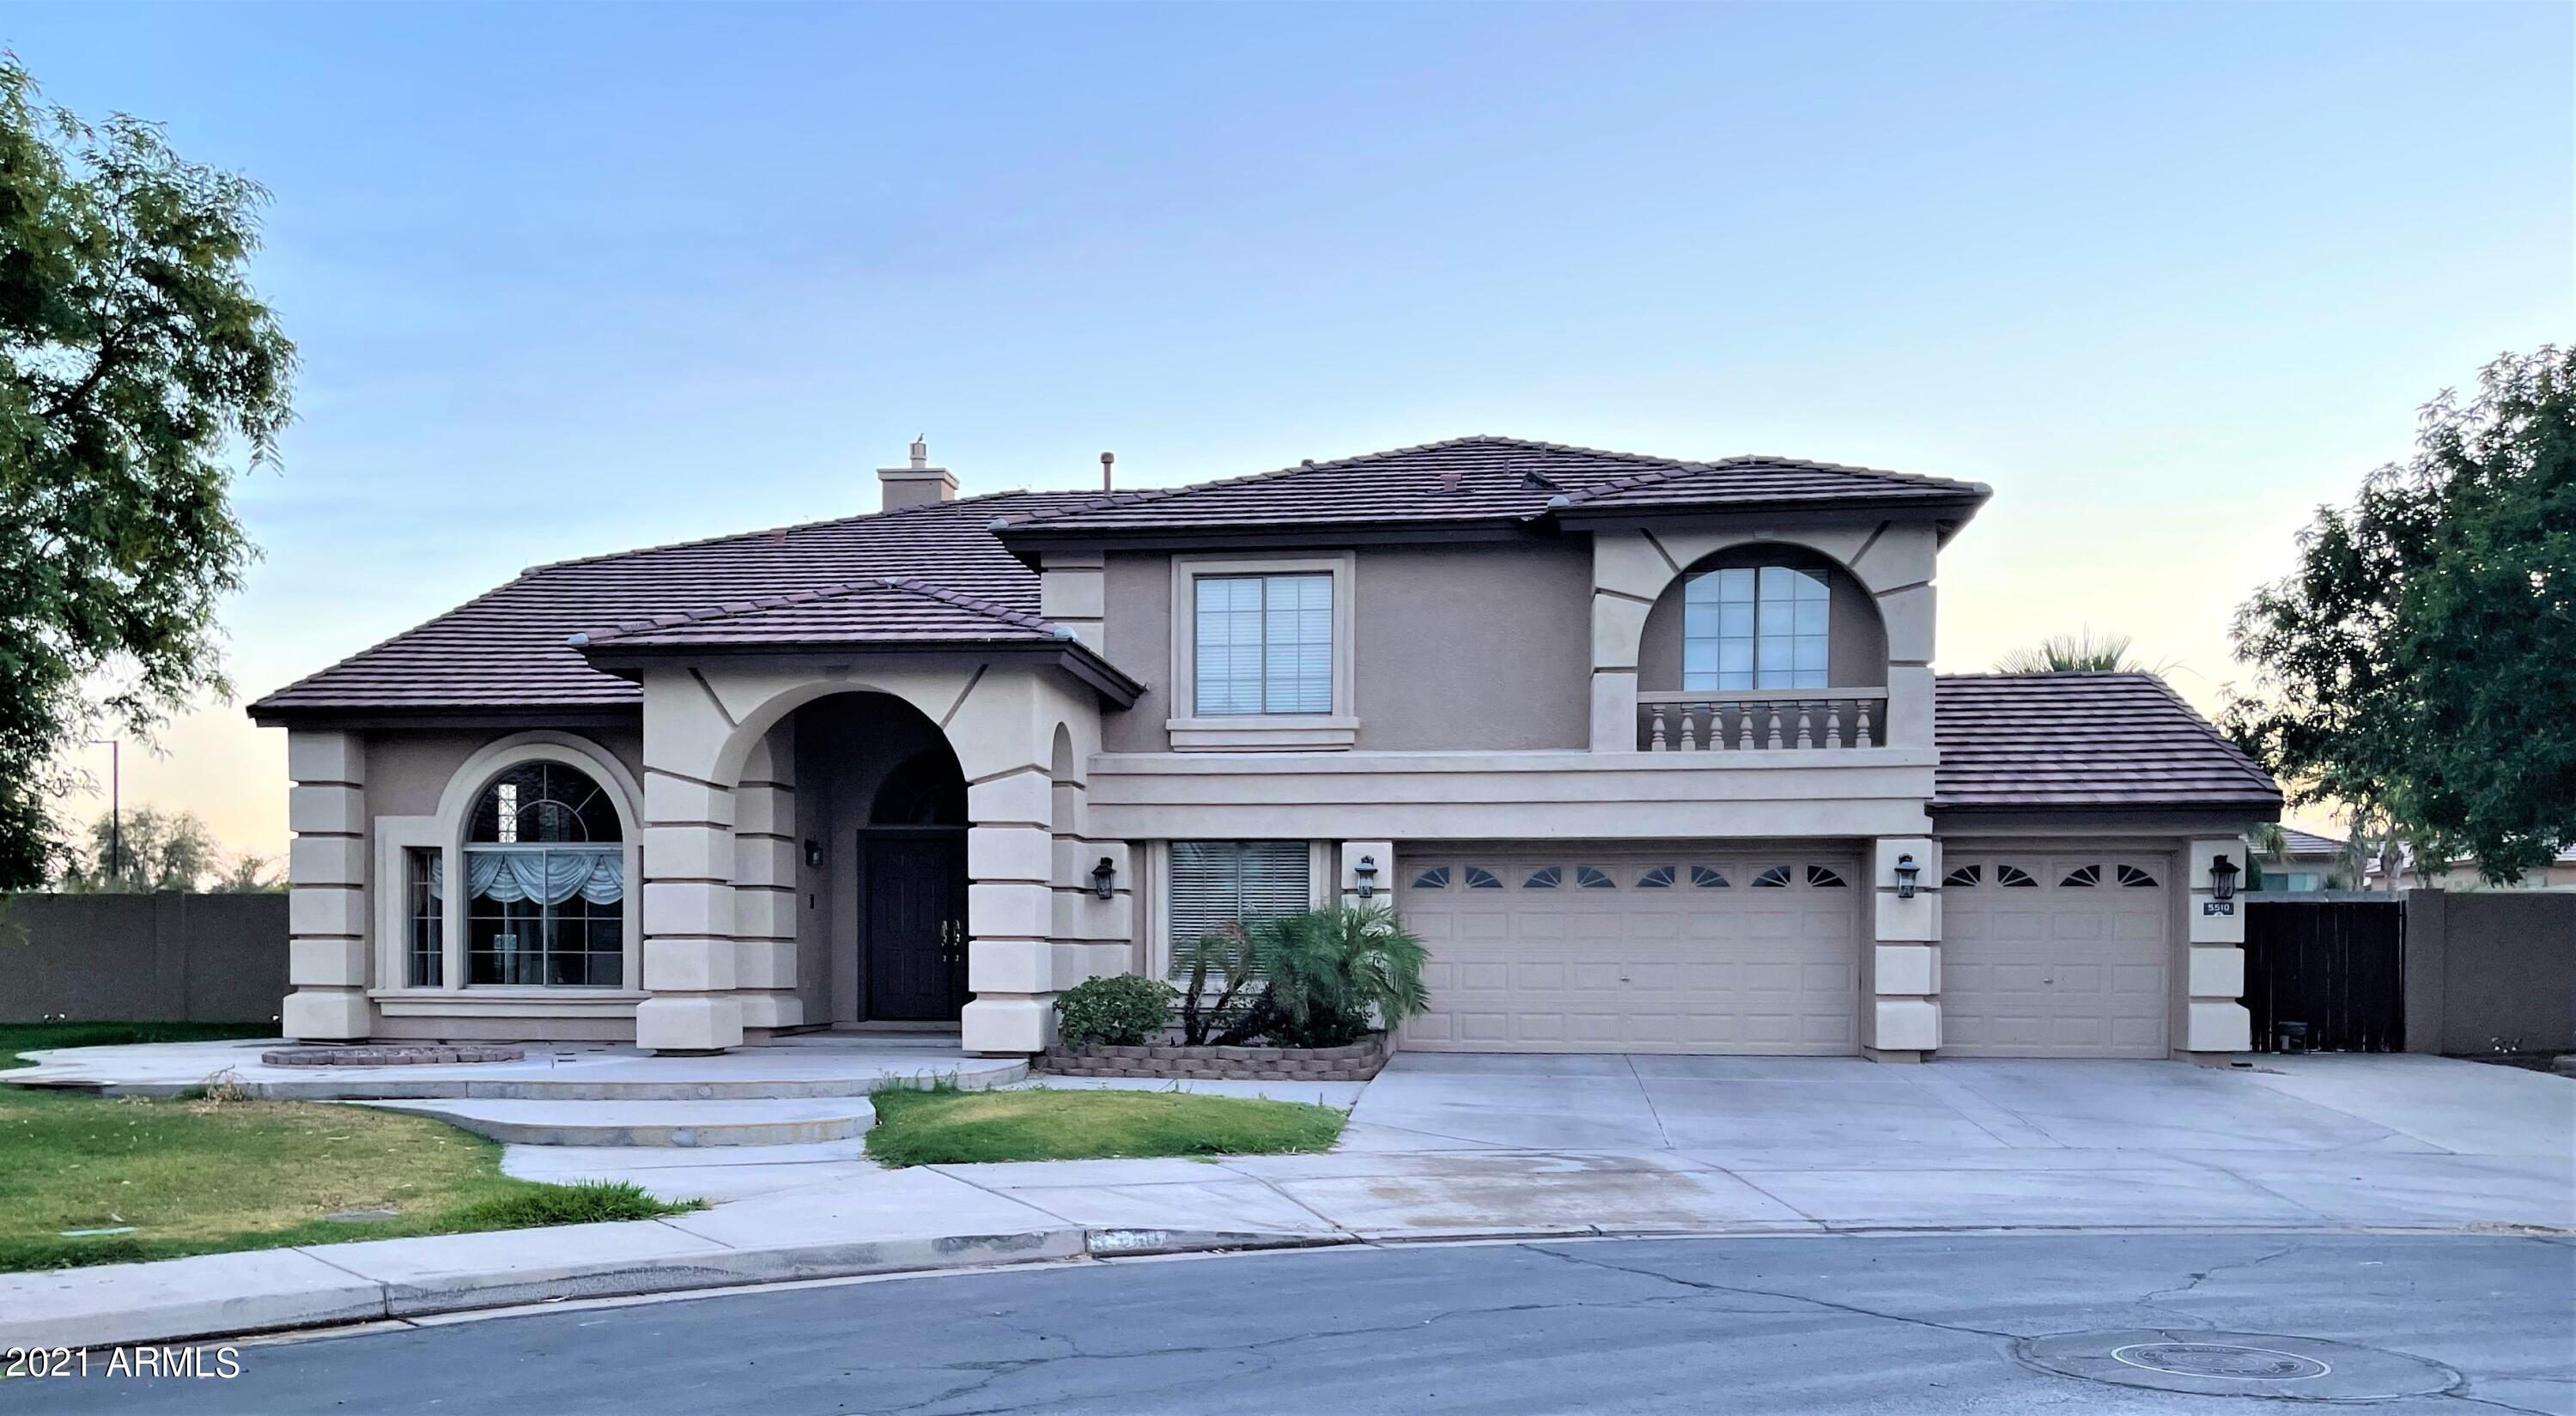 5510 N 132ND Drive, Litchfield Park, AZ 85340, 5 Bedrooms Bedrooms, ,Residential Lease,For Rent,5510 N 132ND Drive,6258132